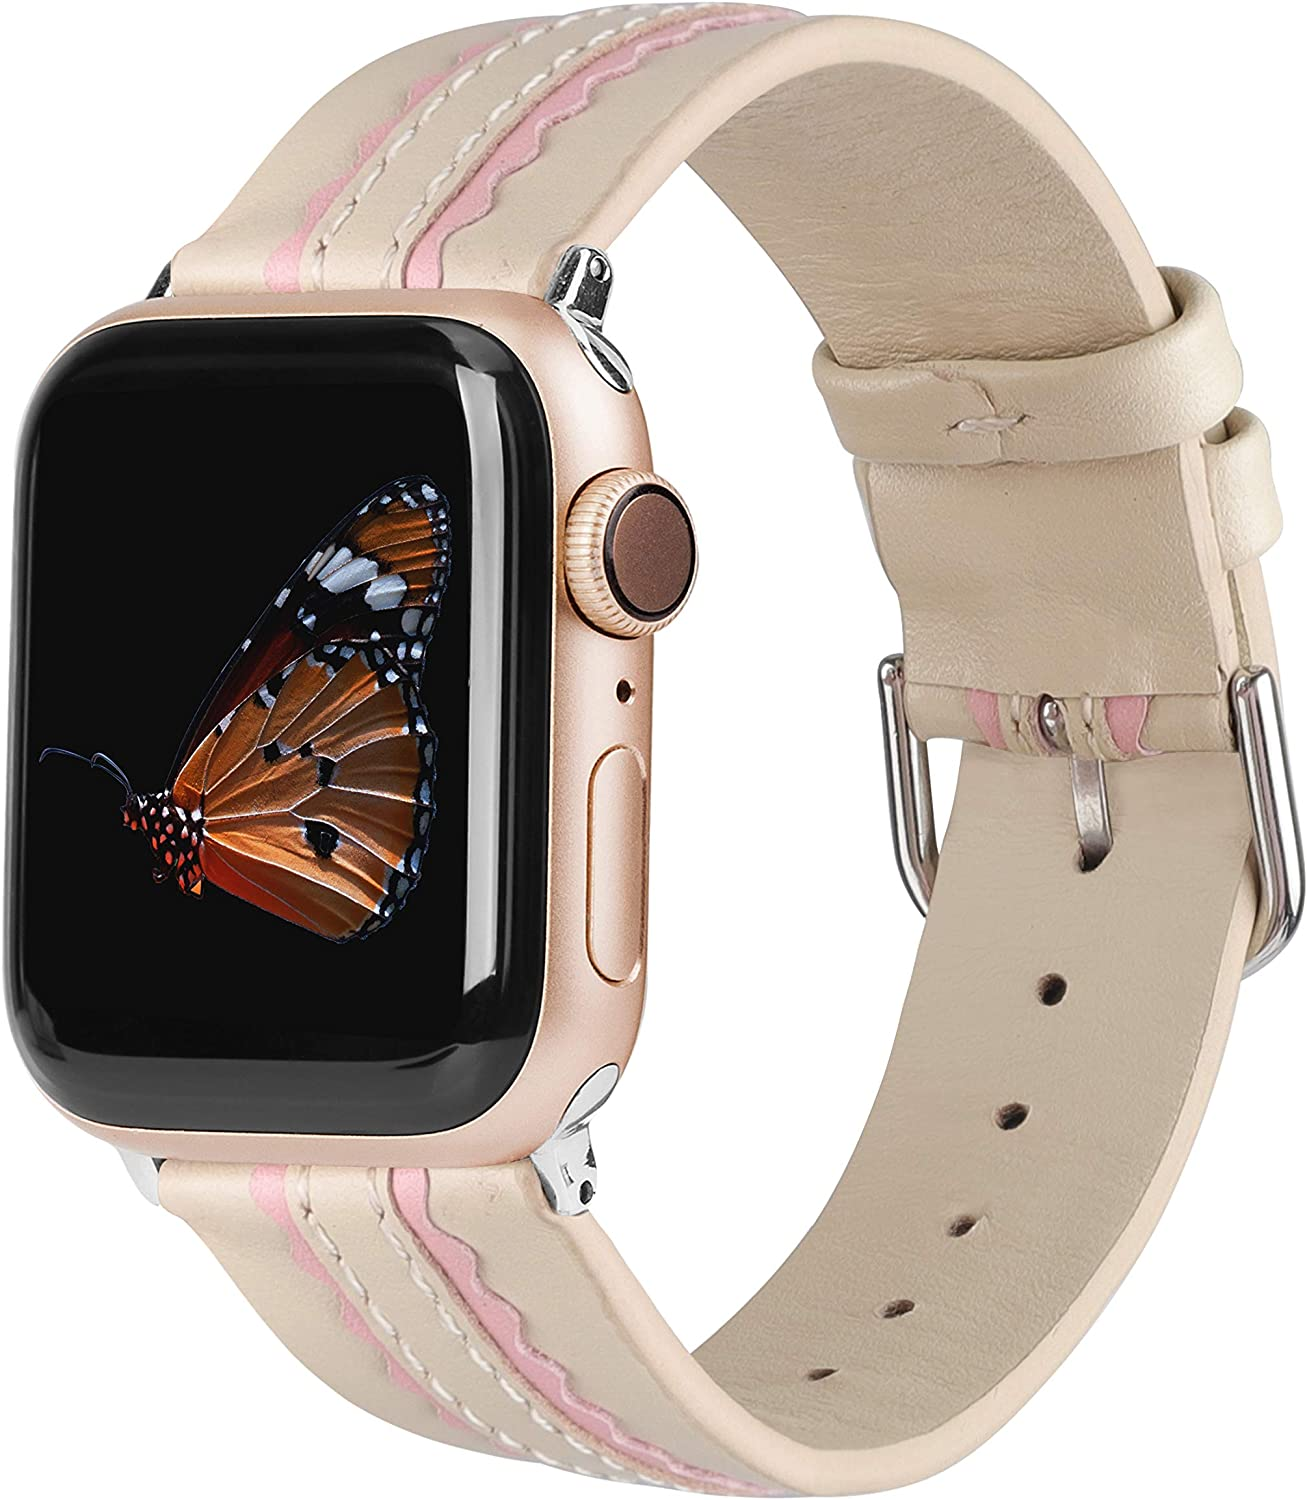 Wearlizer Genuine Leather Bands Compatible with Apple Watch 38mm 40mm 42mm 44mm, Soft Two Stripe with Wide Women Wristband Strap Replacement and Silver Adapter for iWatch Series 6 5 4 3 2 1 (Beige+Pink,38mm/40mm)